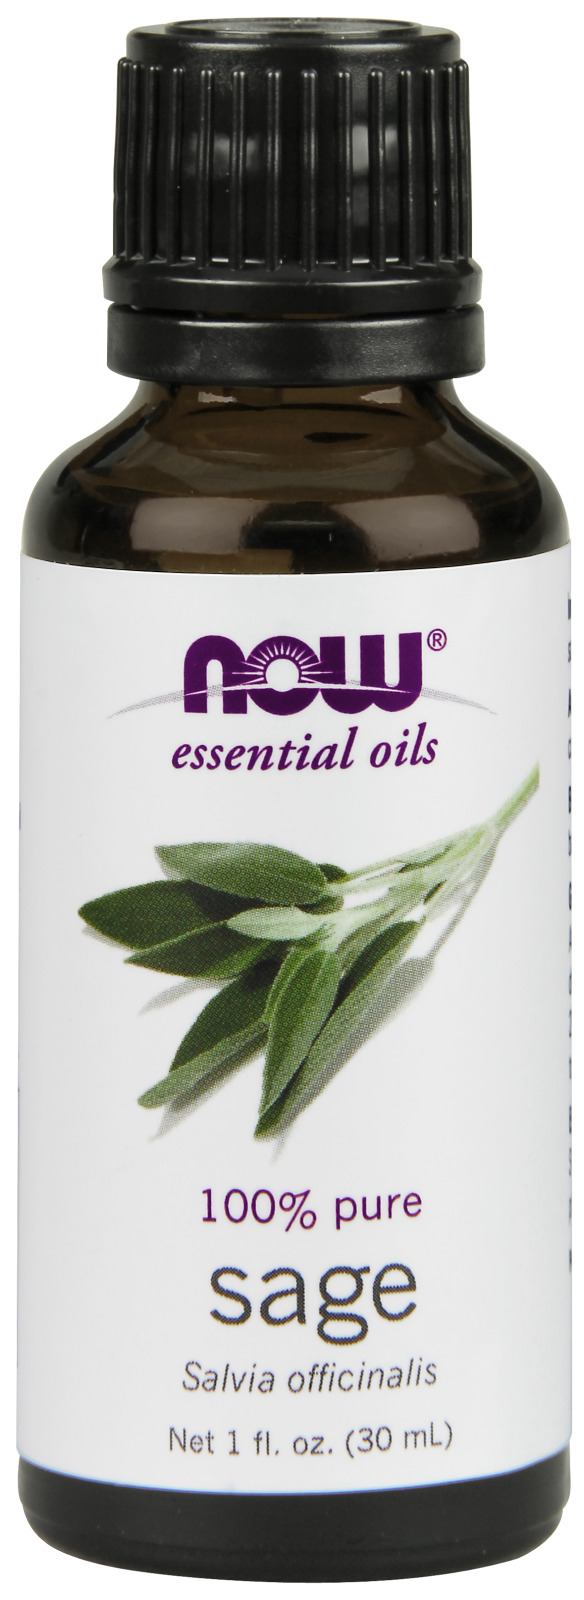 Sage Oil 1 fl oz (30 ml) by NOW